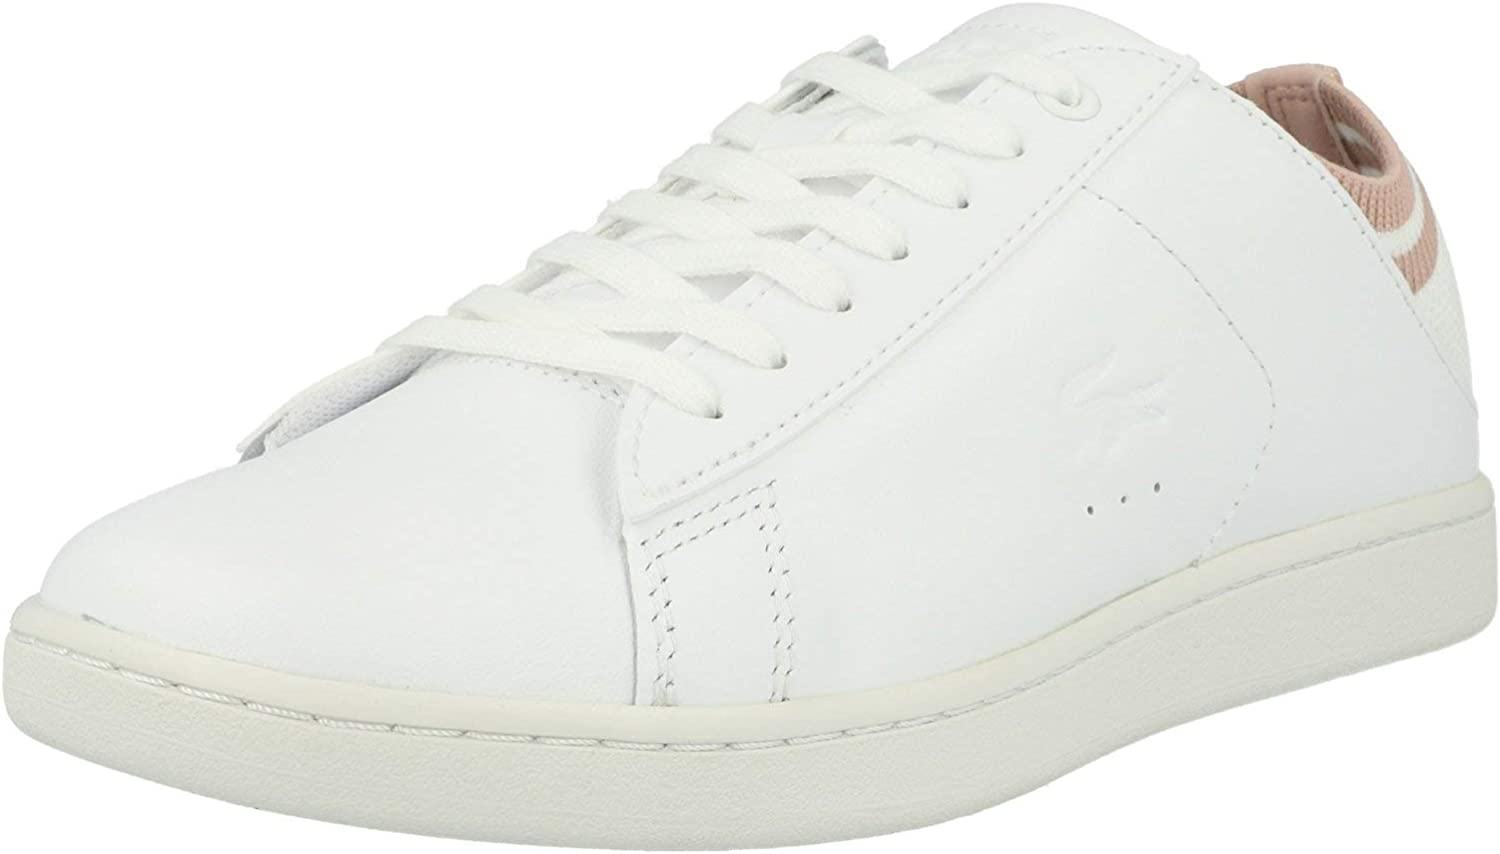 Lacoste Carnaby Evo Duo 120